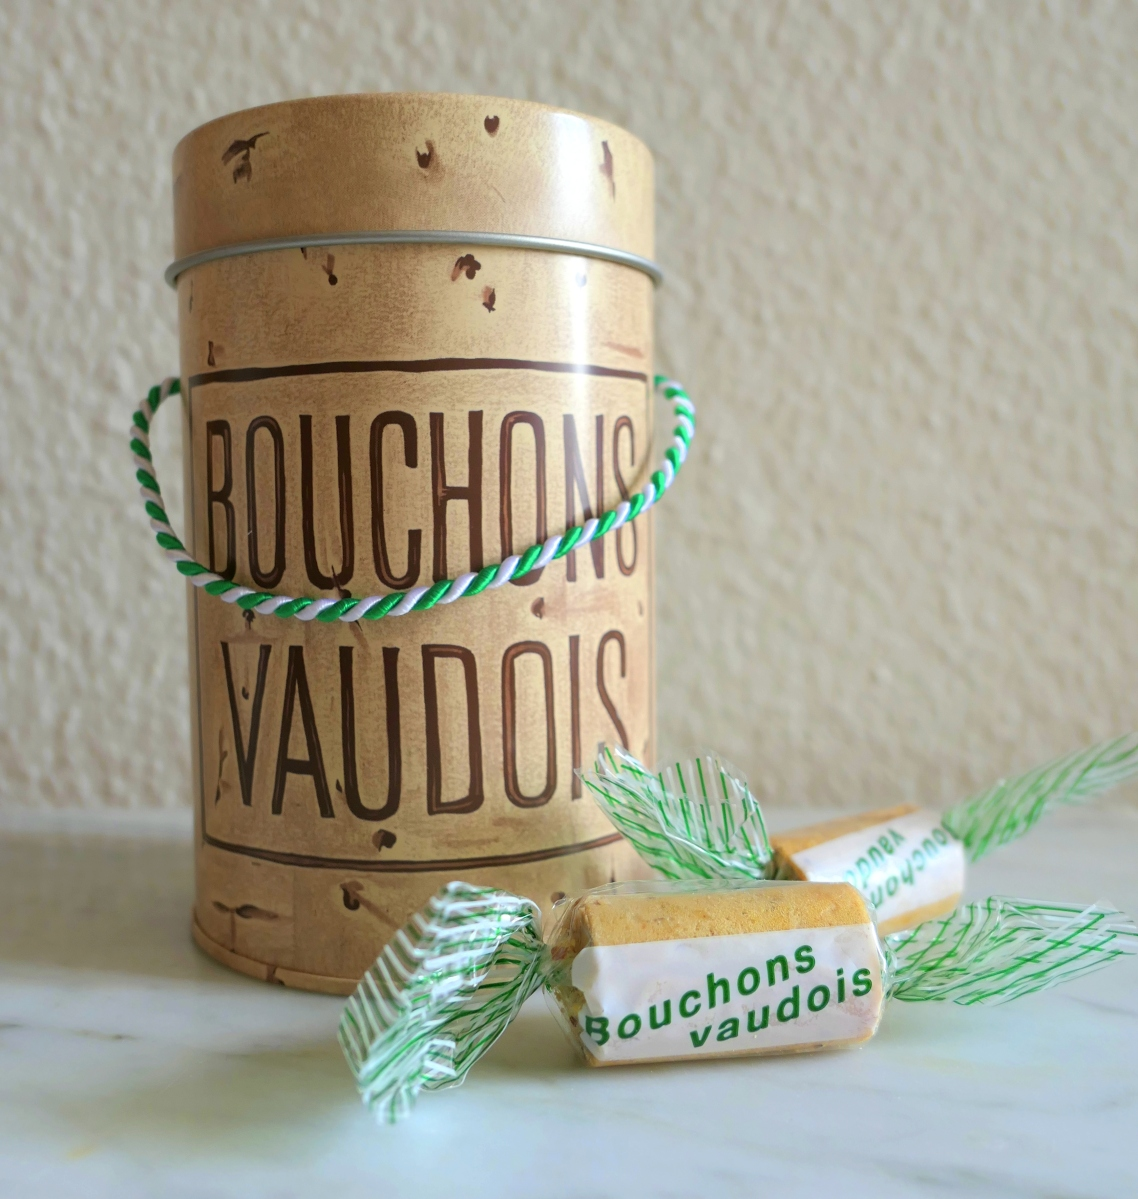 10 Facts About Bouchons Vaudois: A Swiss Treat That Looks Like a Cork